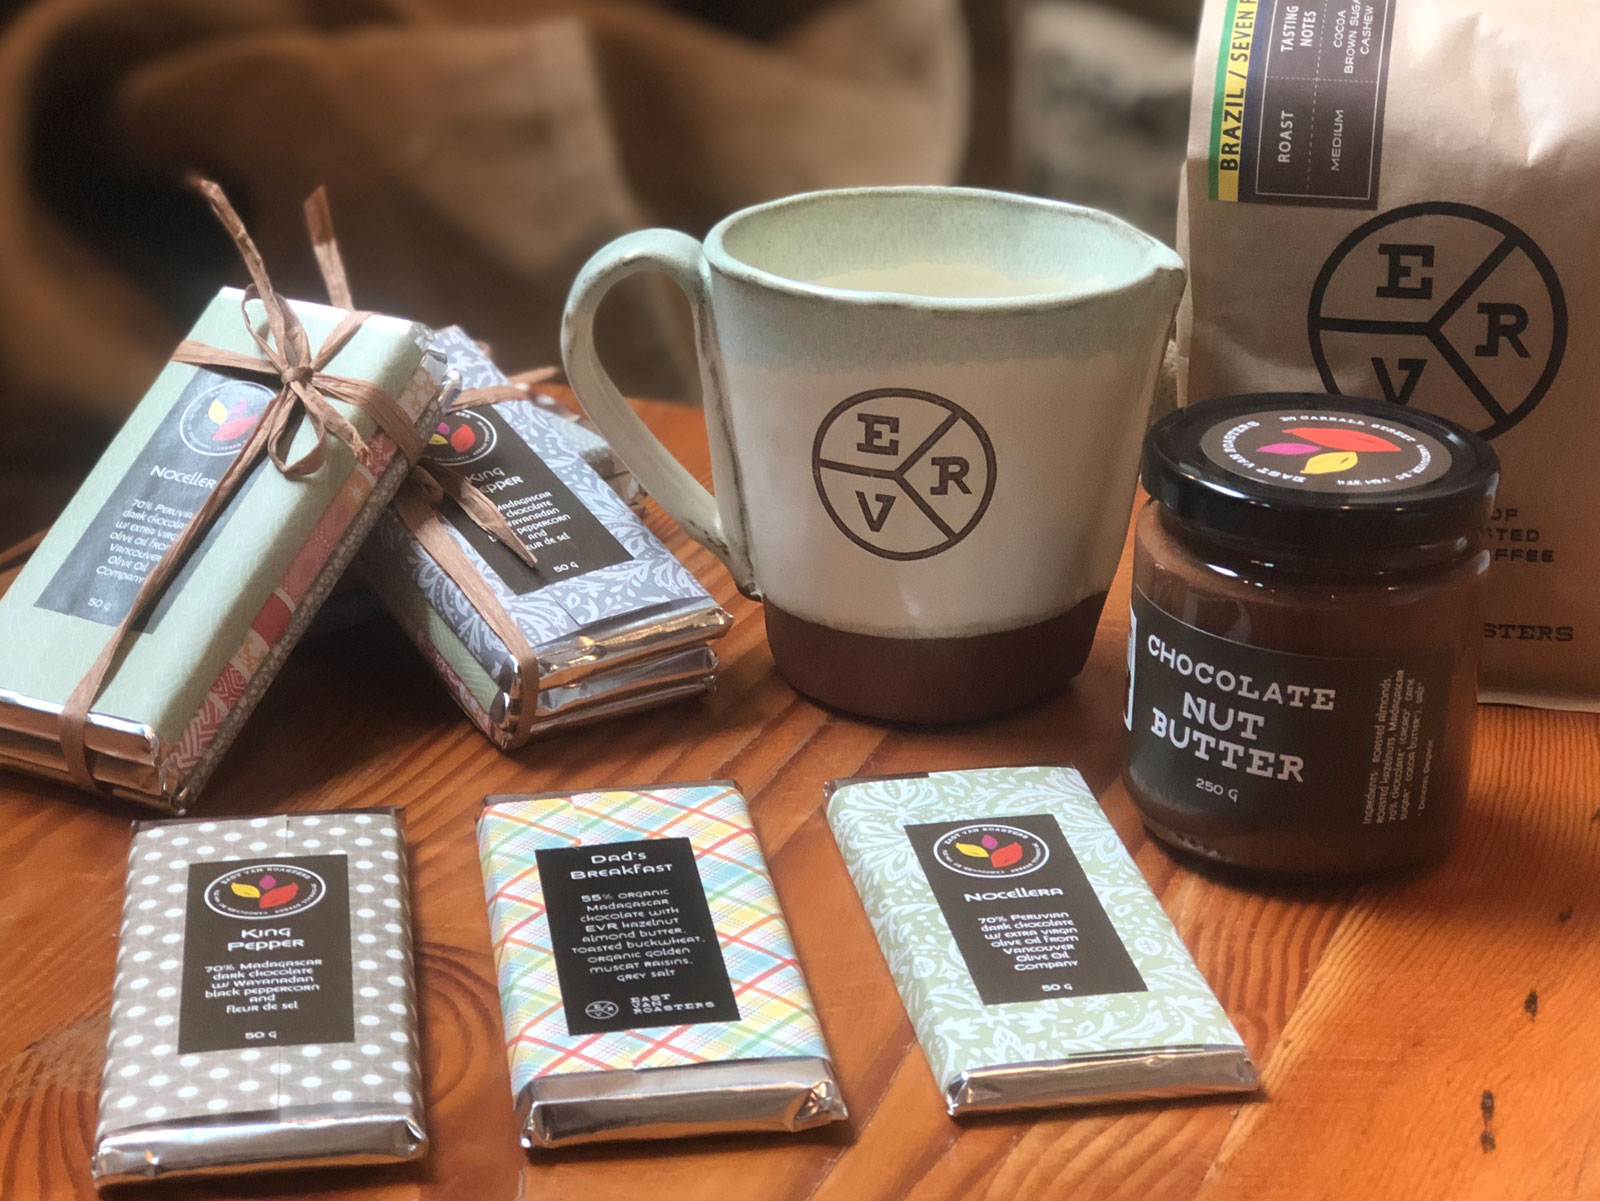 East Van Roasters Releases Special Father's Day Chocolates